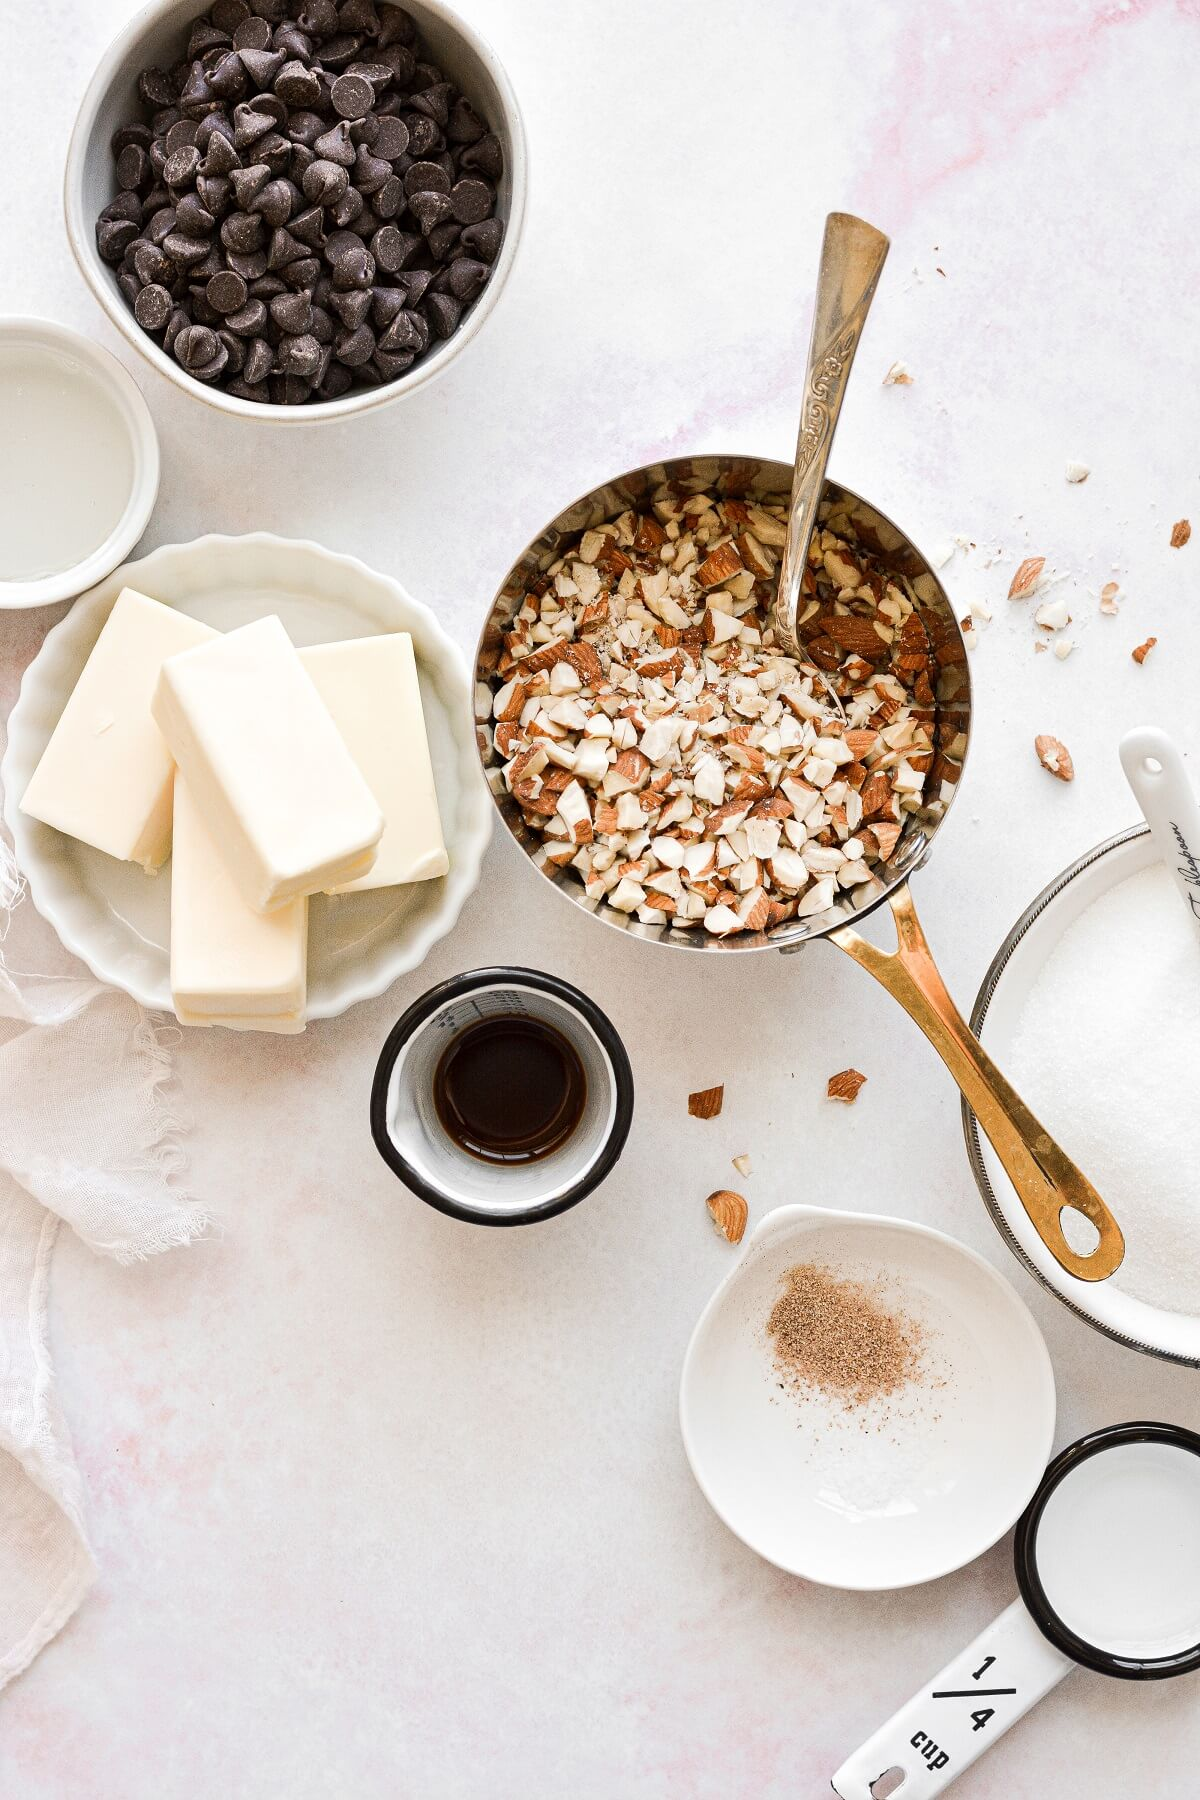 Ingredients for making English toffee.